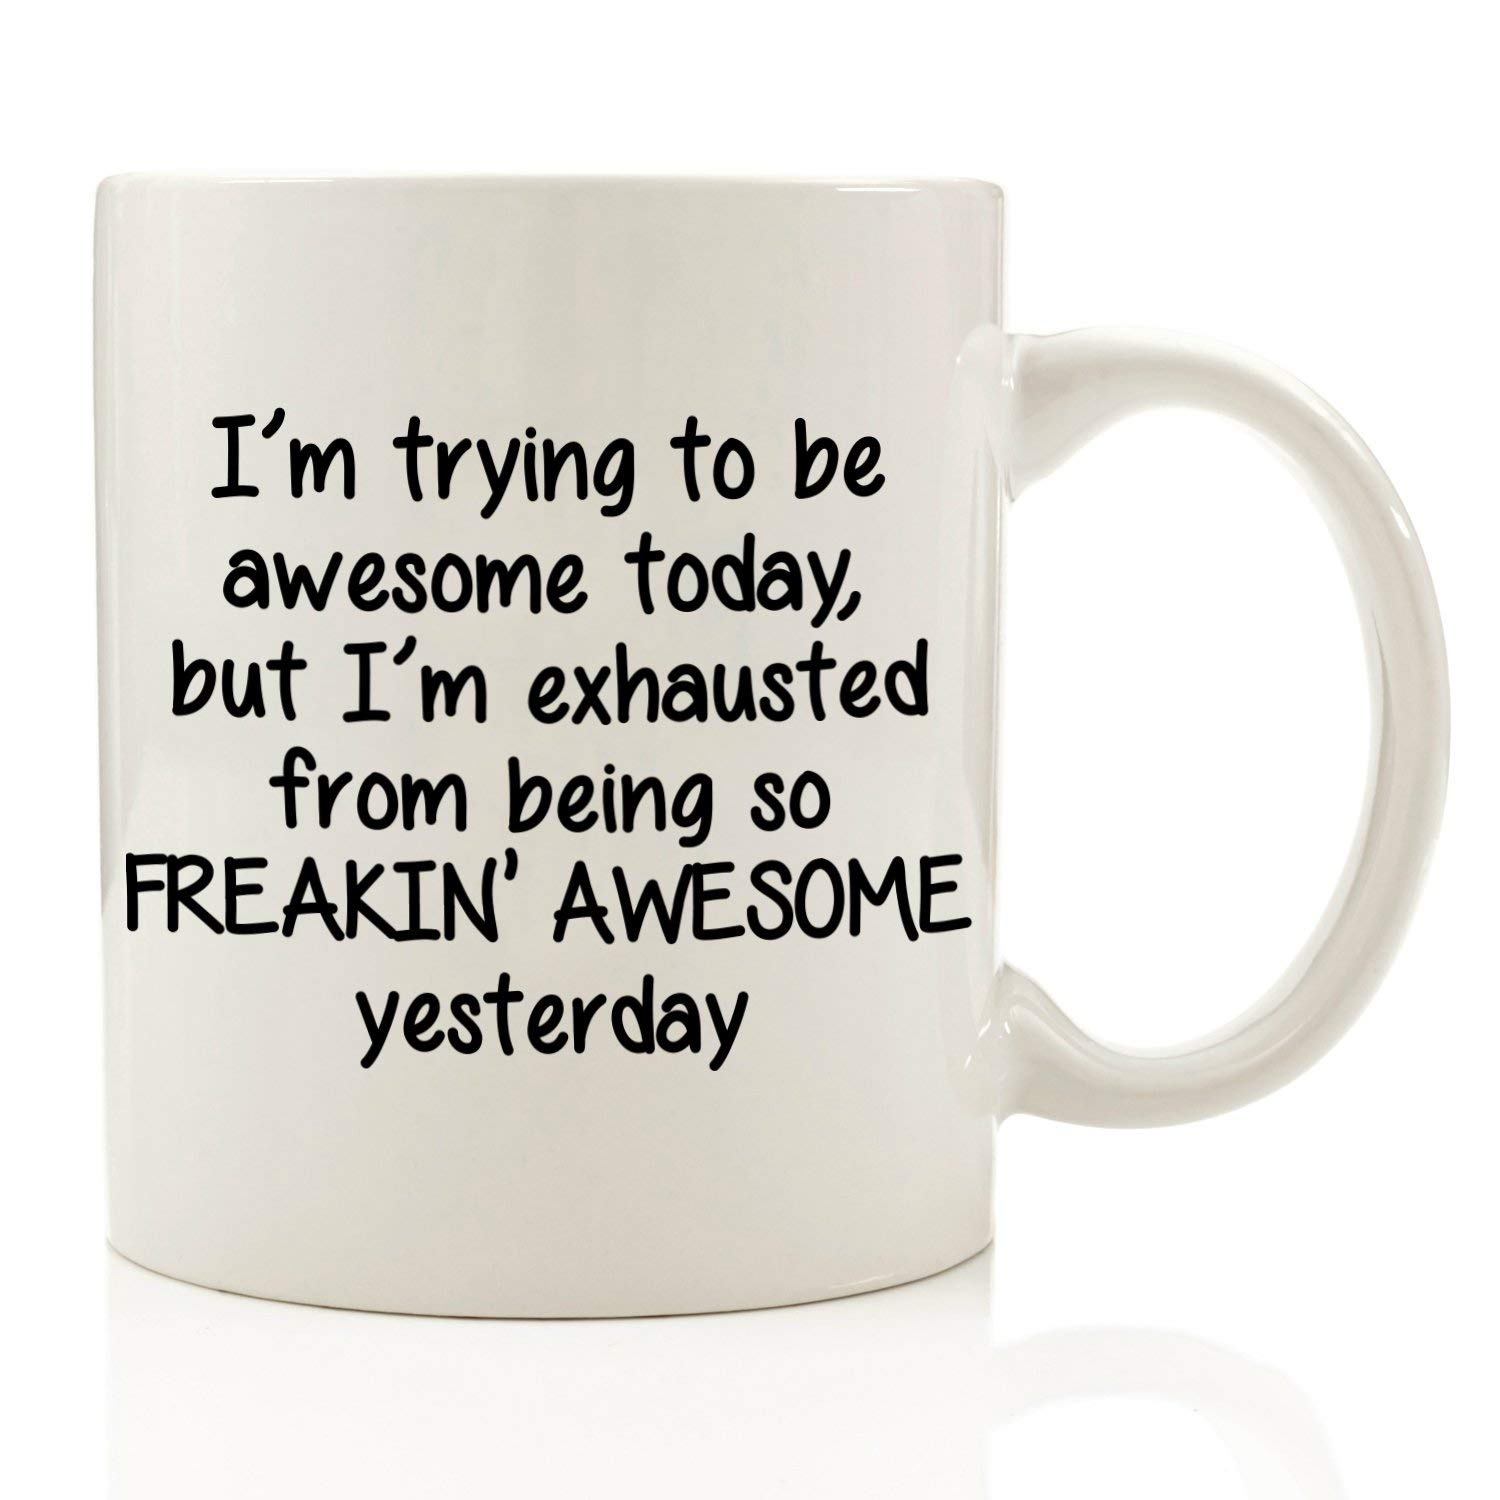 I'm Trying To Be Awesome Today Funny Coffee Mug 11 Oz Birthday Gift image